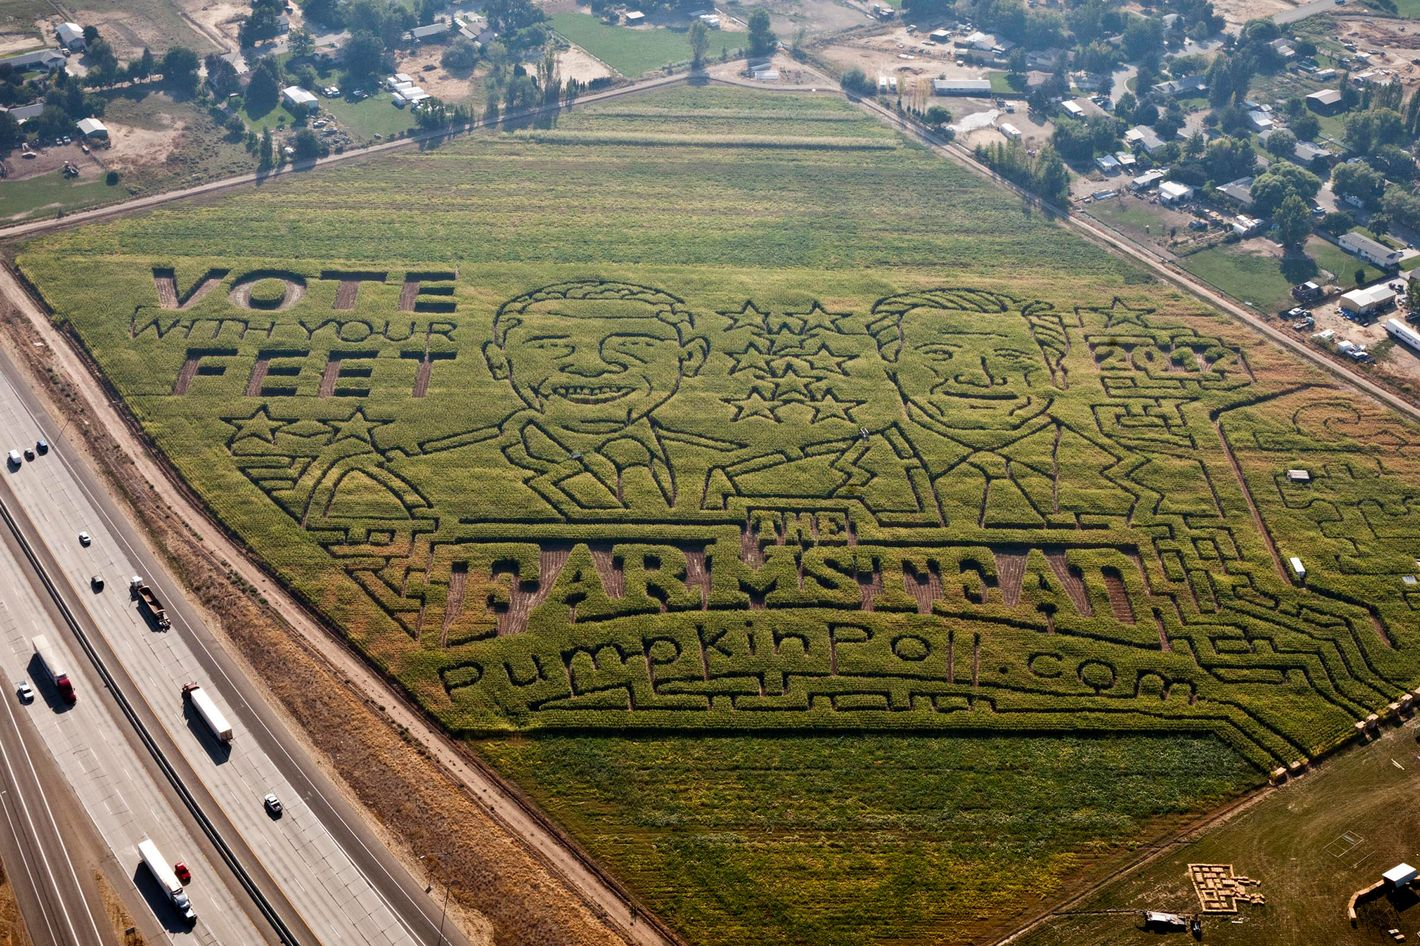 "An 18-acre corn maze at The Farmstead in Meridian, Idaho, features a political face-off between Republican presidential candidate Mitt Romney and President Barack Obama. ""People can choose to go left or right as they enter the maze,"" said Jim Lowe, farmer in chief at The Farmstead.  The annual fall attraction will also conduct their own straw poll, or pumpkin poll, as patron cast pumpkins into the bin of their choice for president. The Farmstead will be open September 21, 2012 through November 3, 2012."